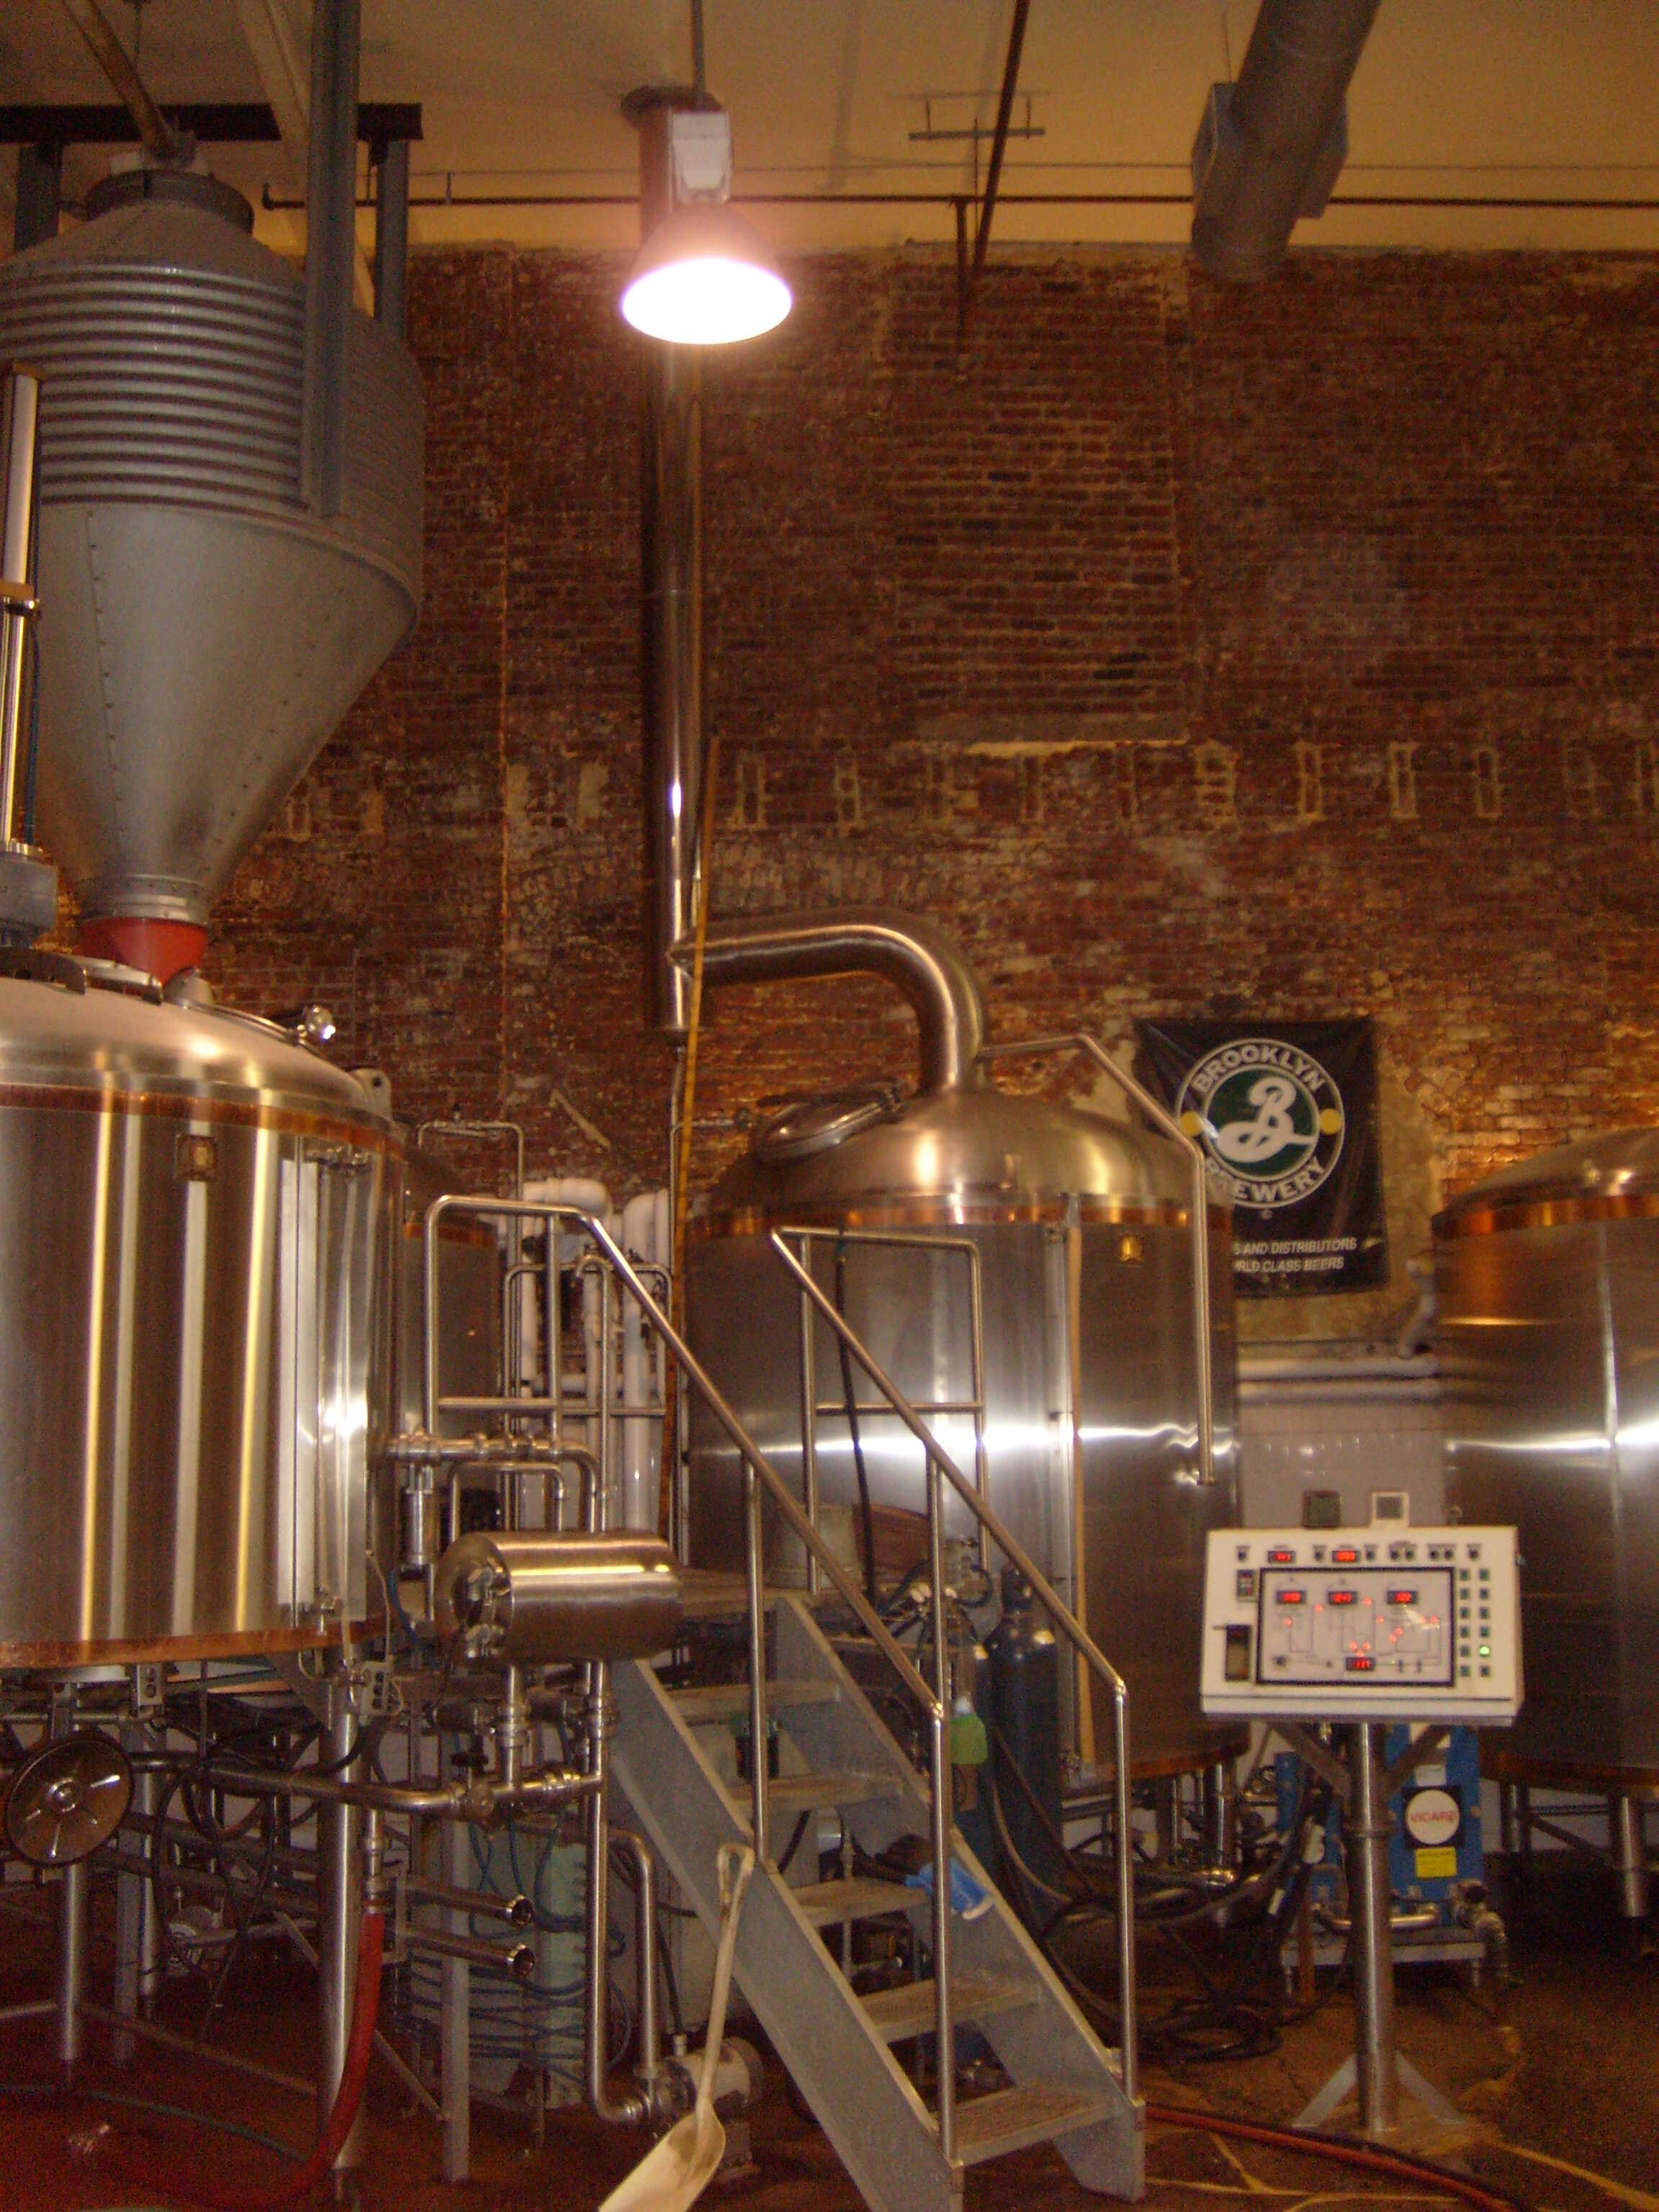 The role of sanitary stainless steel tanks in beer brewing for Craft kettle brewing equipment